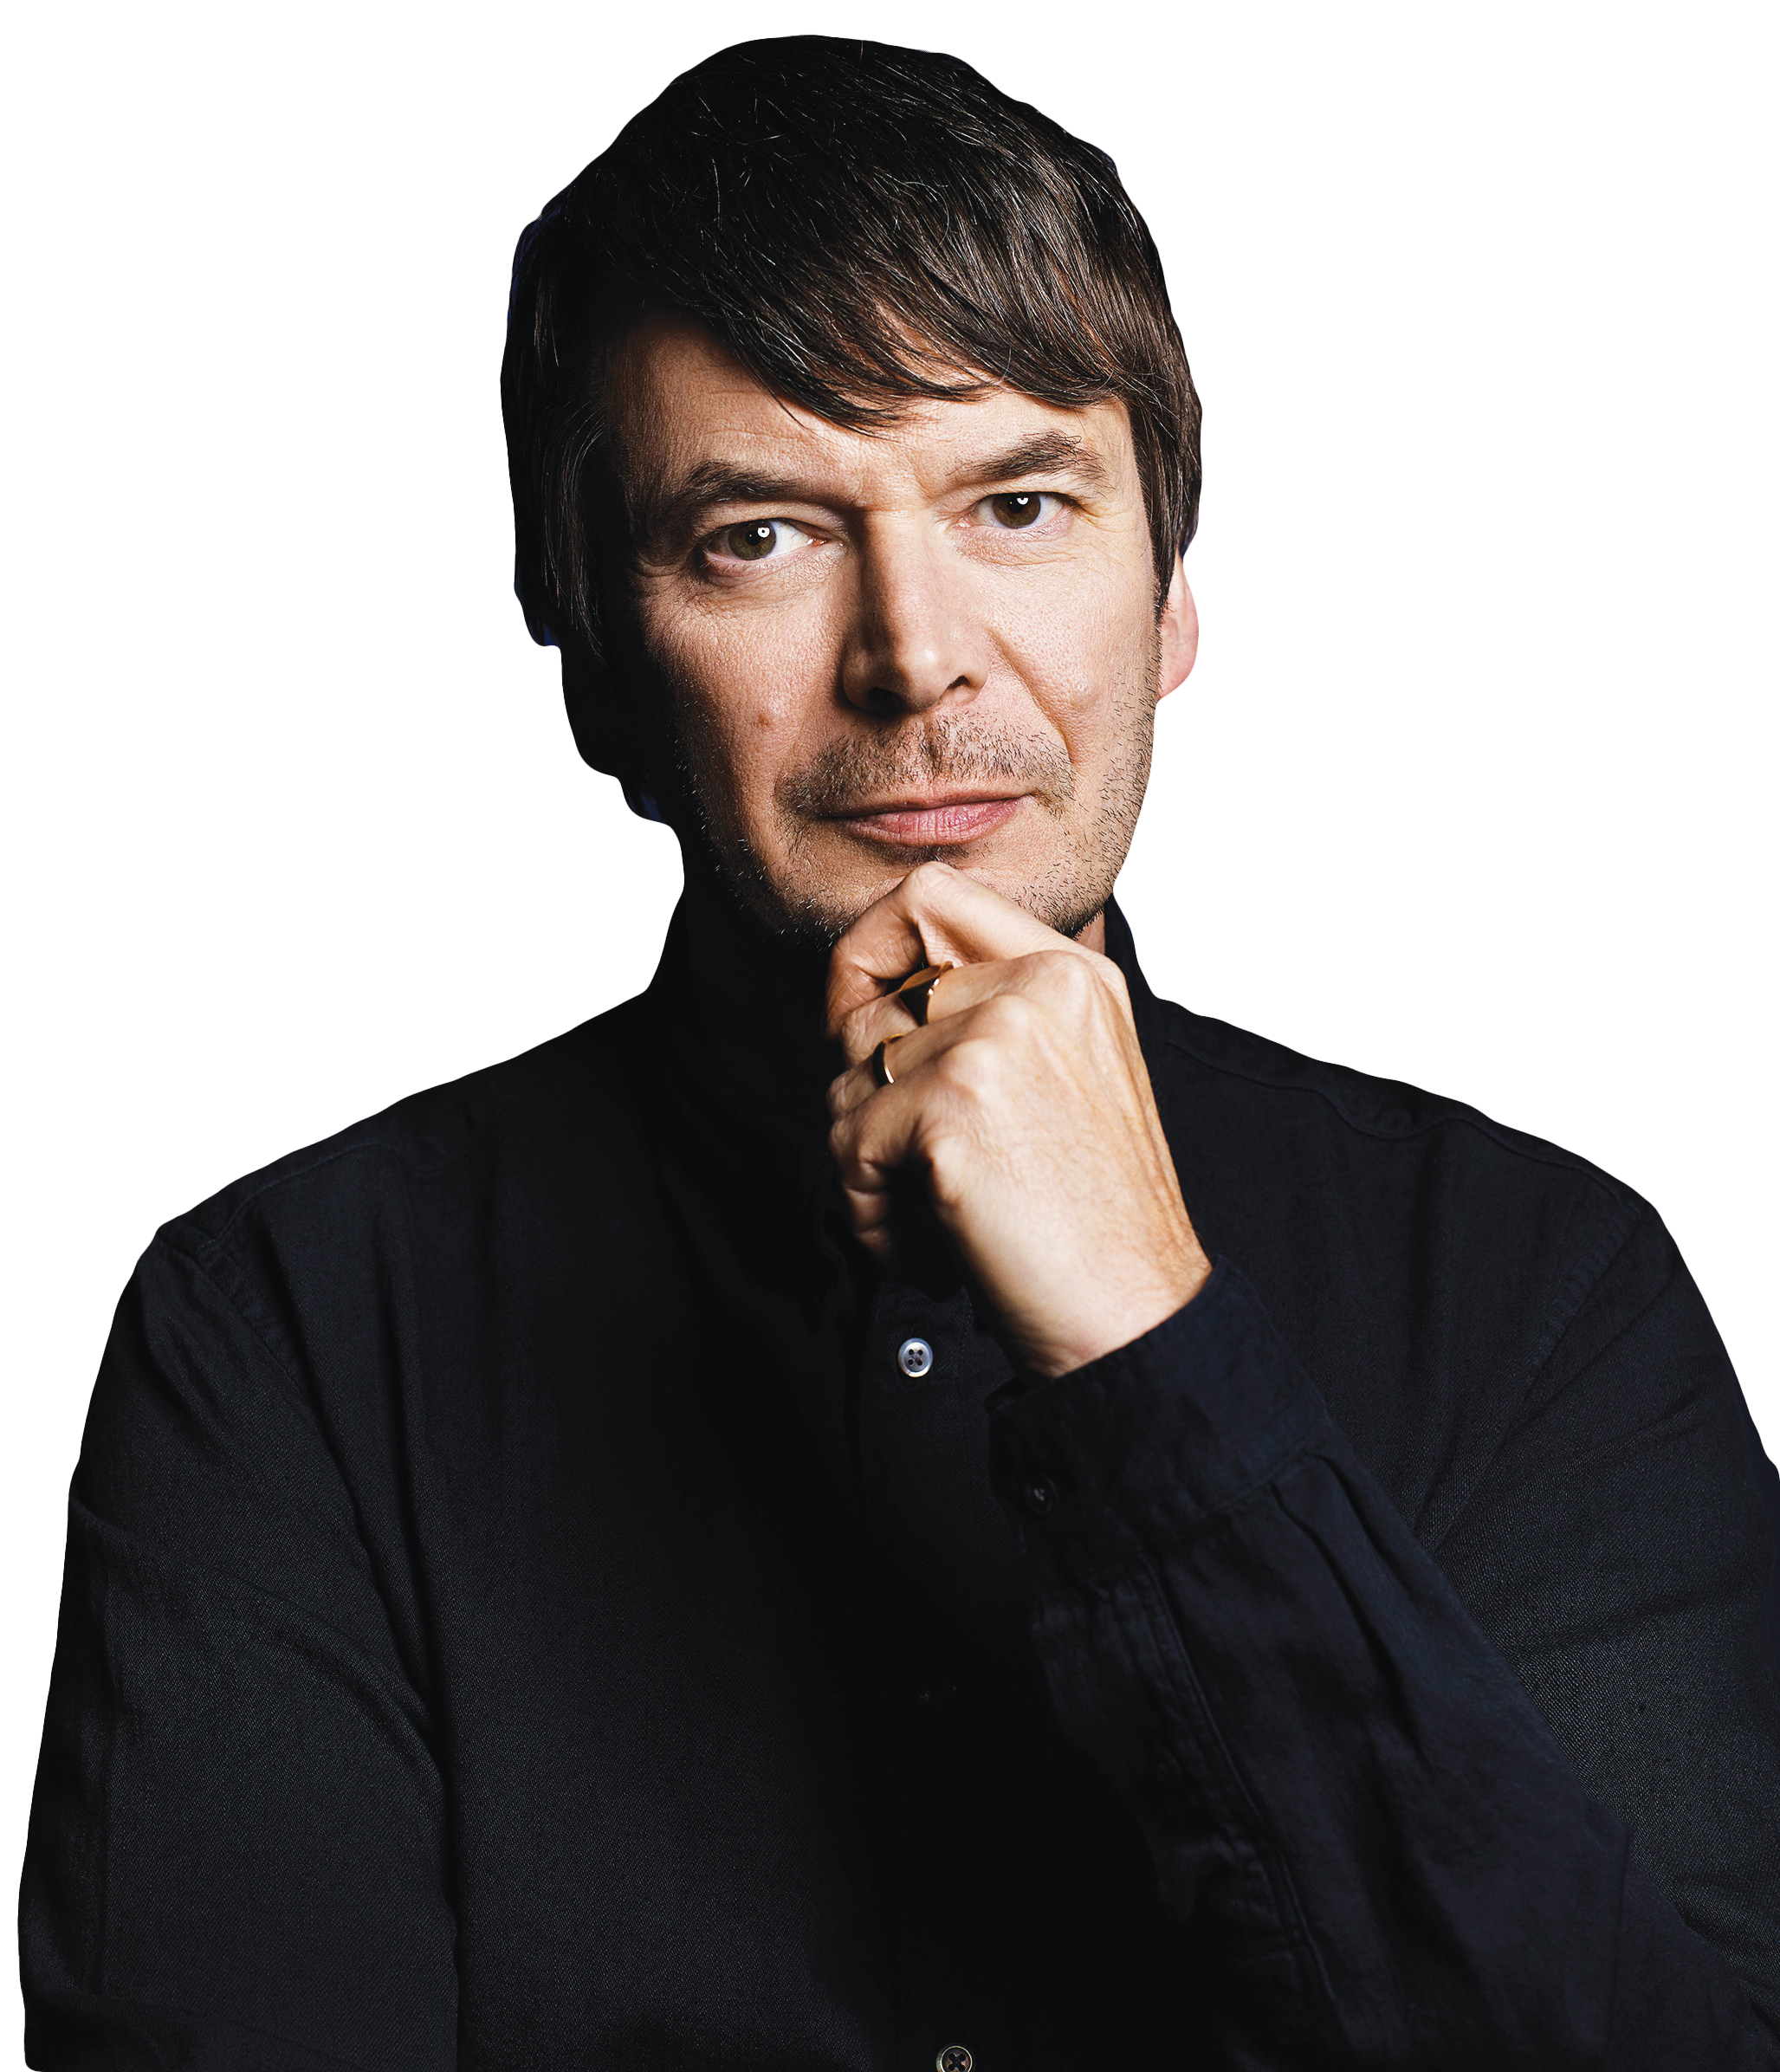 Scottish crime writer Ian Rankin joins us on this week's episode for a most unusual reason.